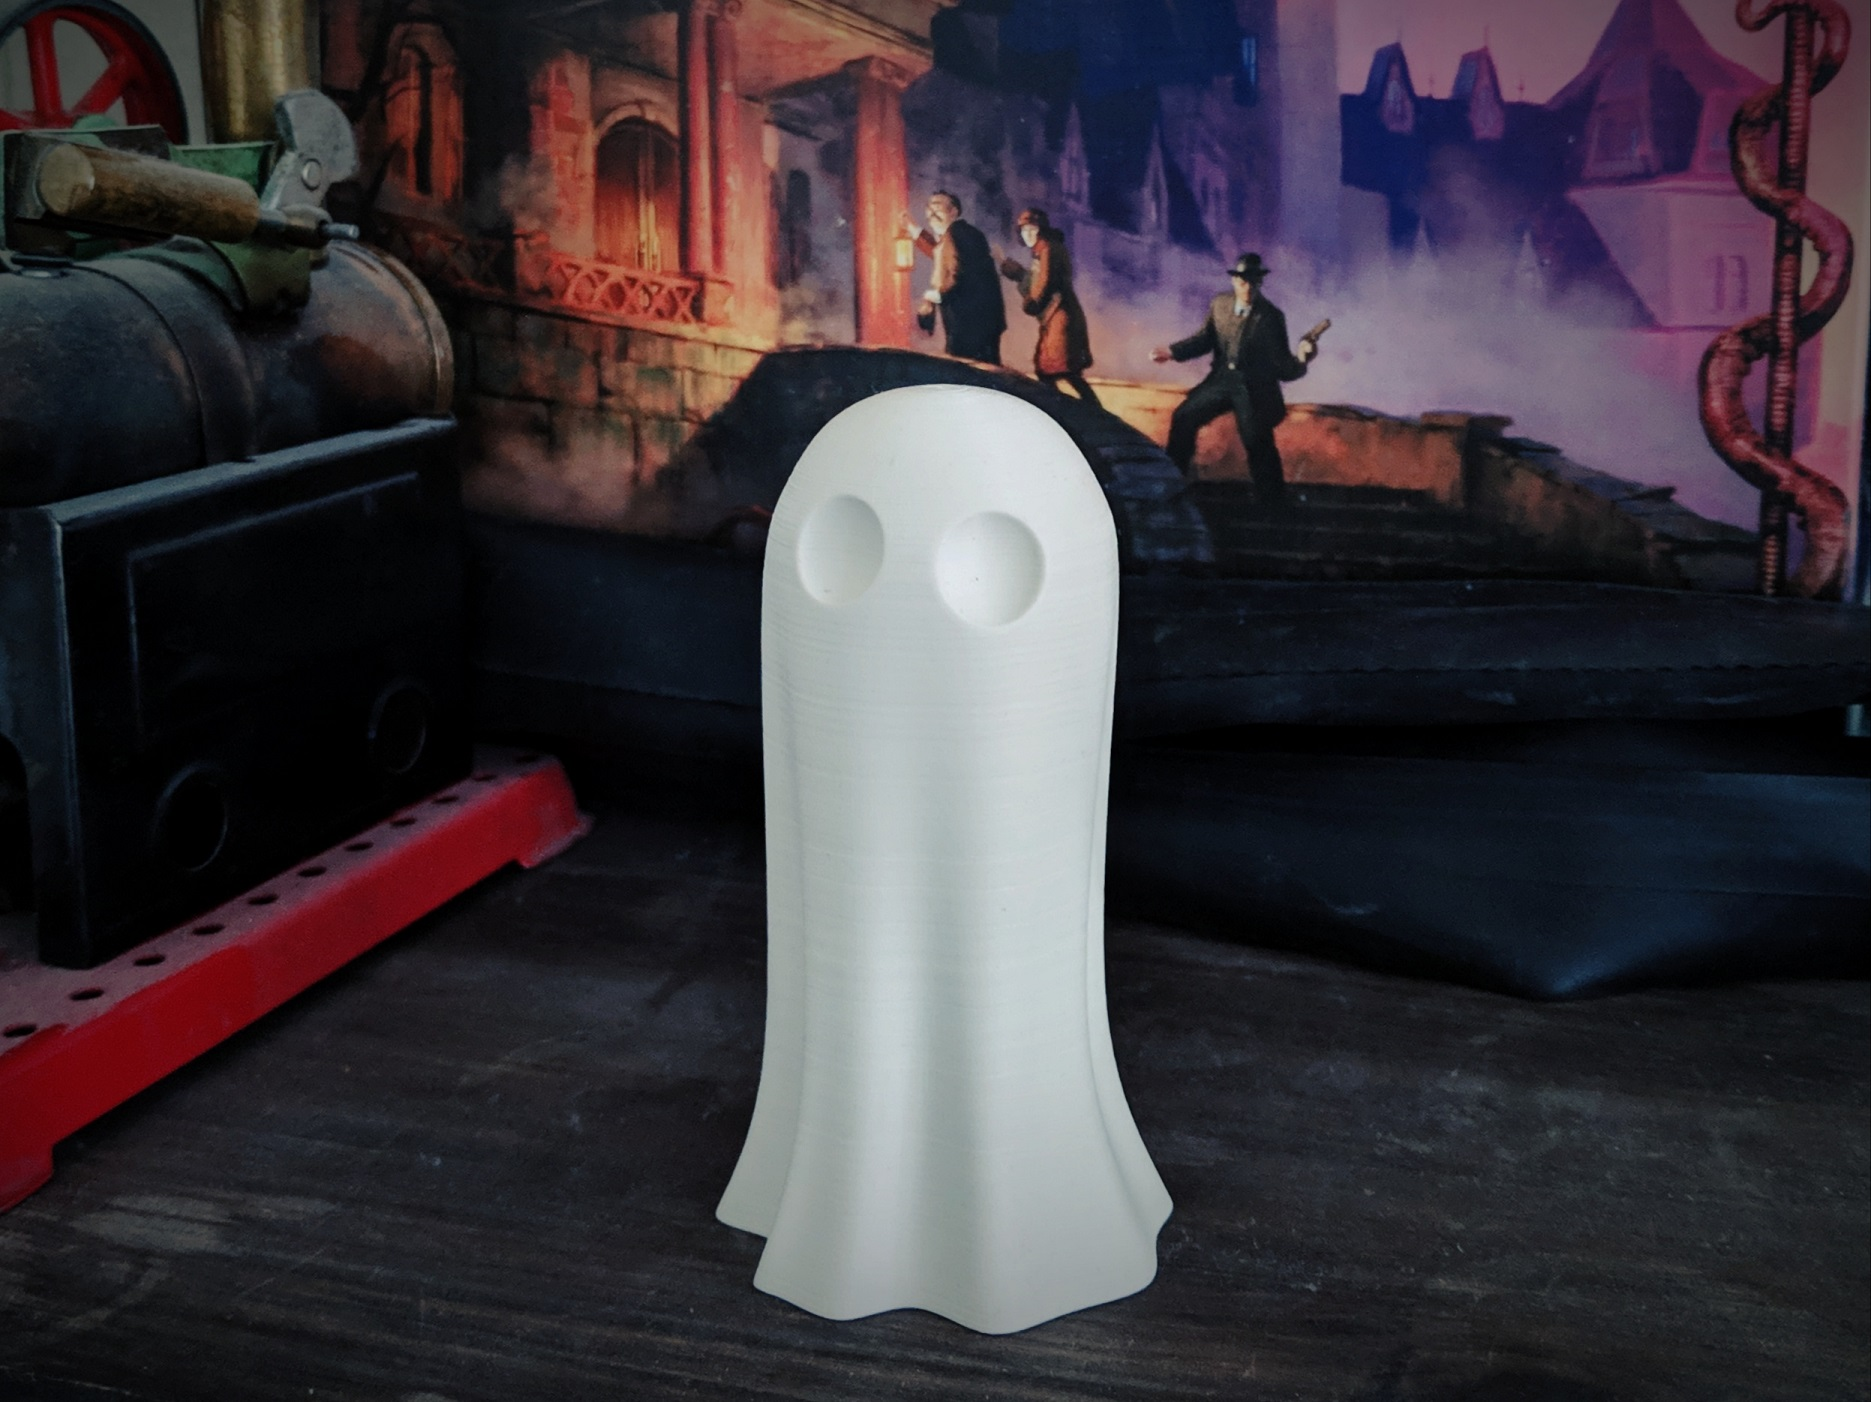 IMG_20191008_121403.jpg Download free STL file Pavel the Ghost • 3D printer design, Superbeasti